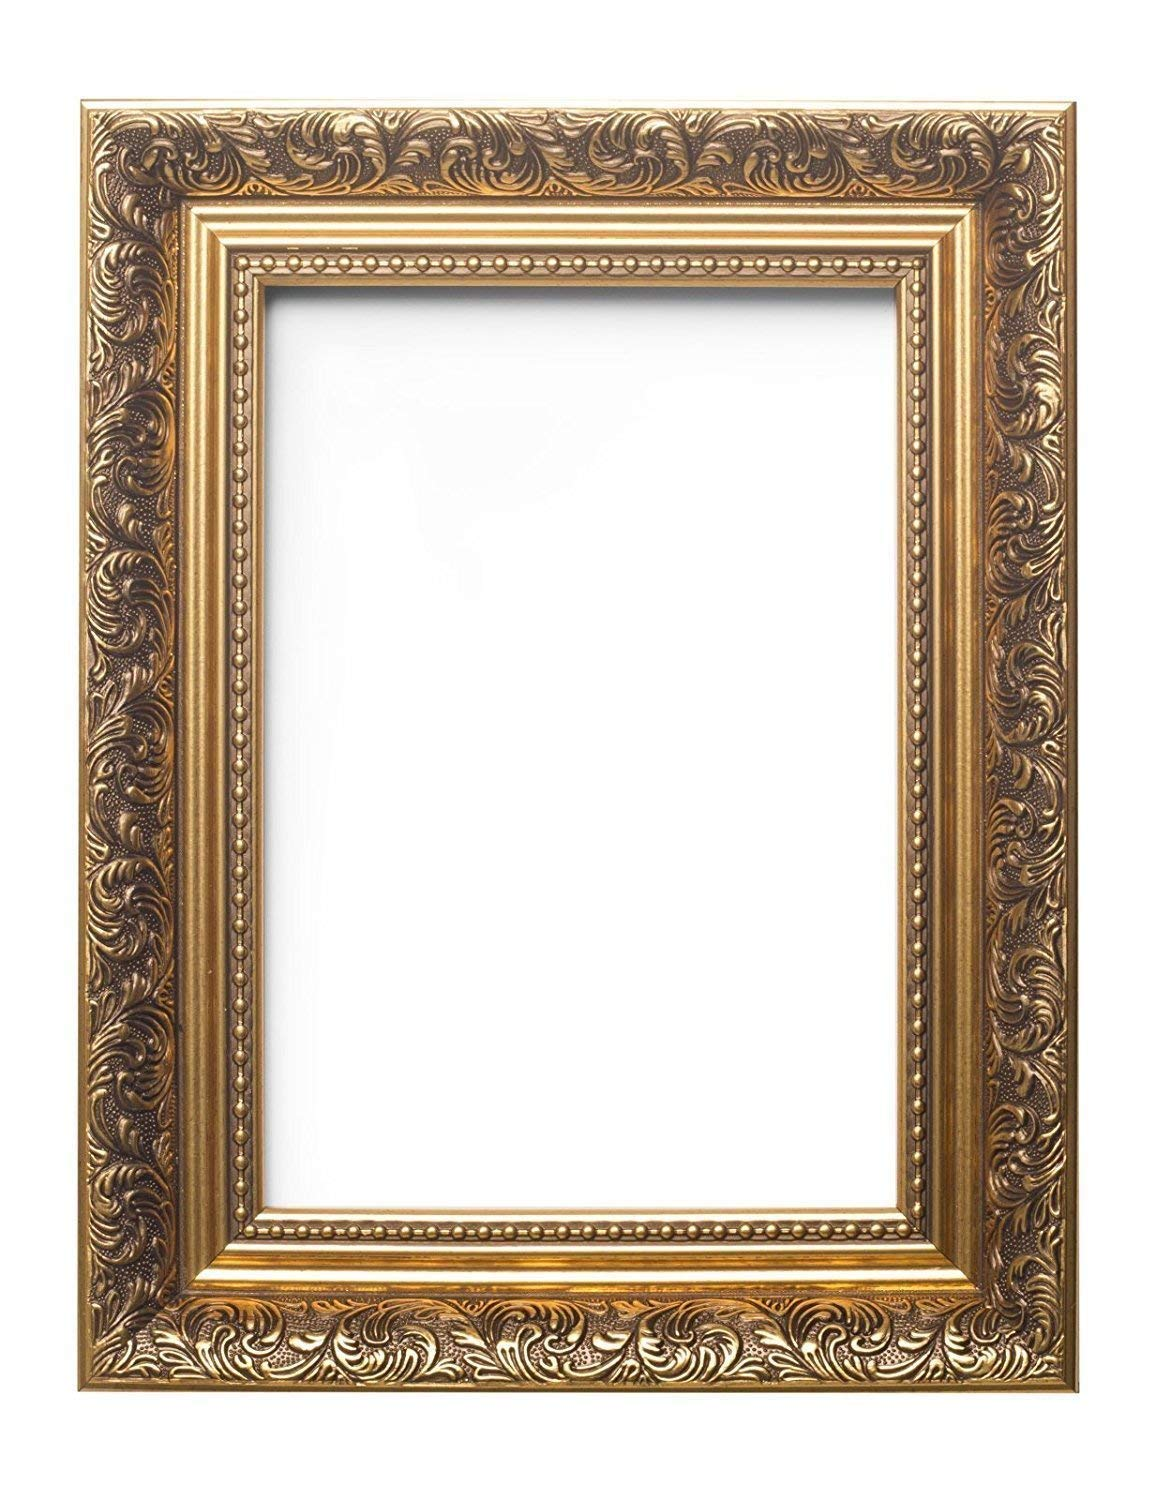 Memory Box Ornate Swept Antique Style French Baroque Style Picture Frame/Photo Frame/Poster Frame - 10''X8'' Gold - FBA-OSAFS2-GLD-10-8 by Paintings Frames